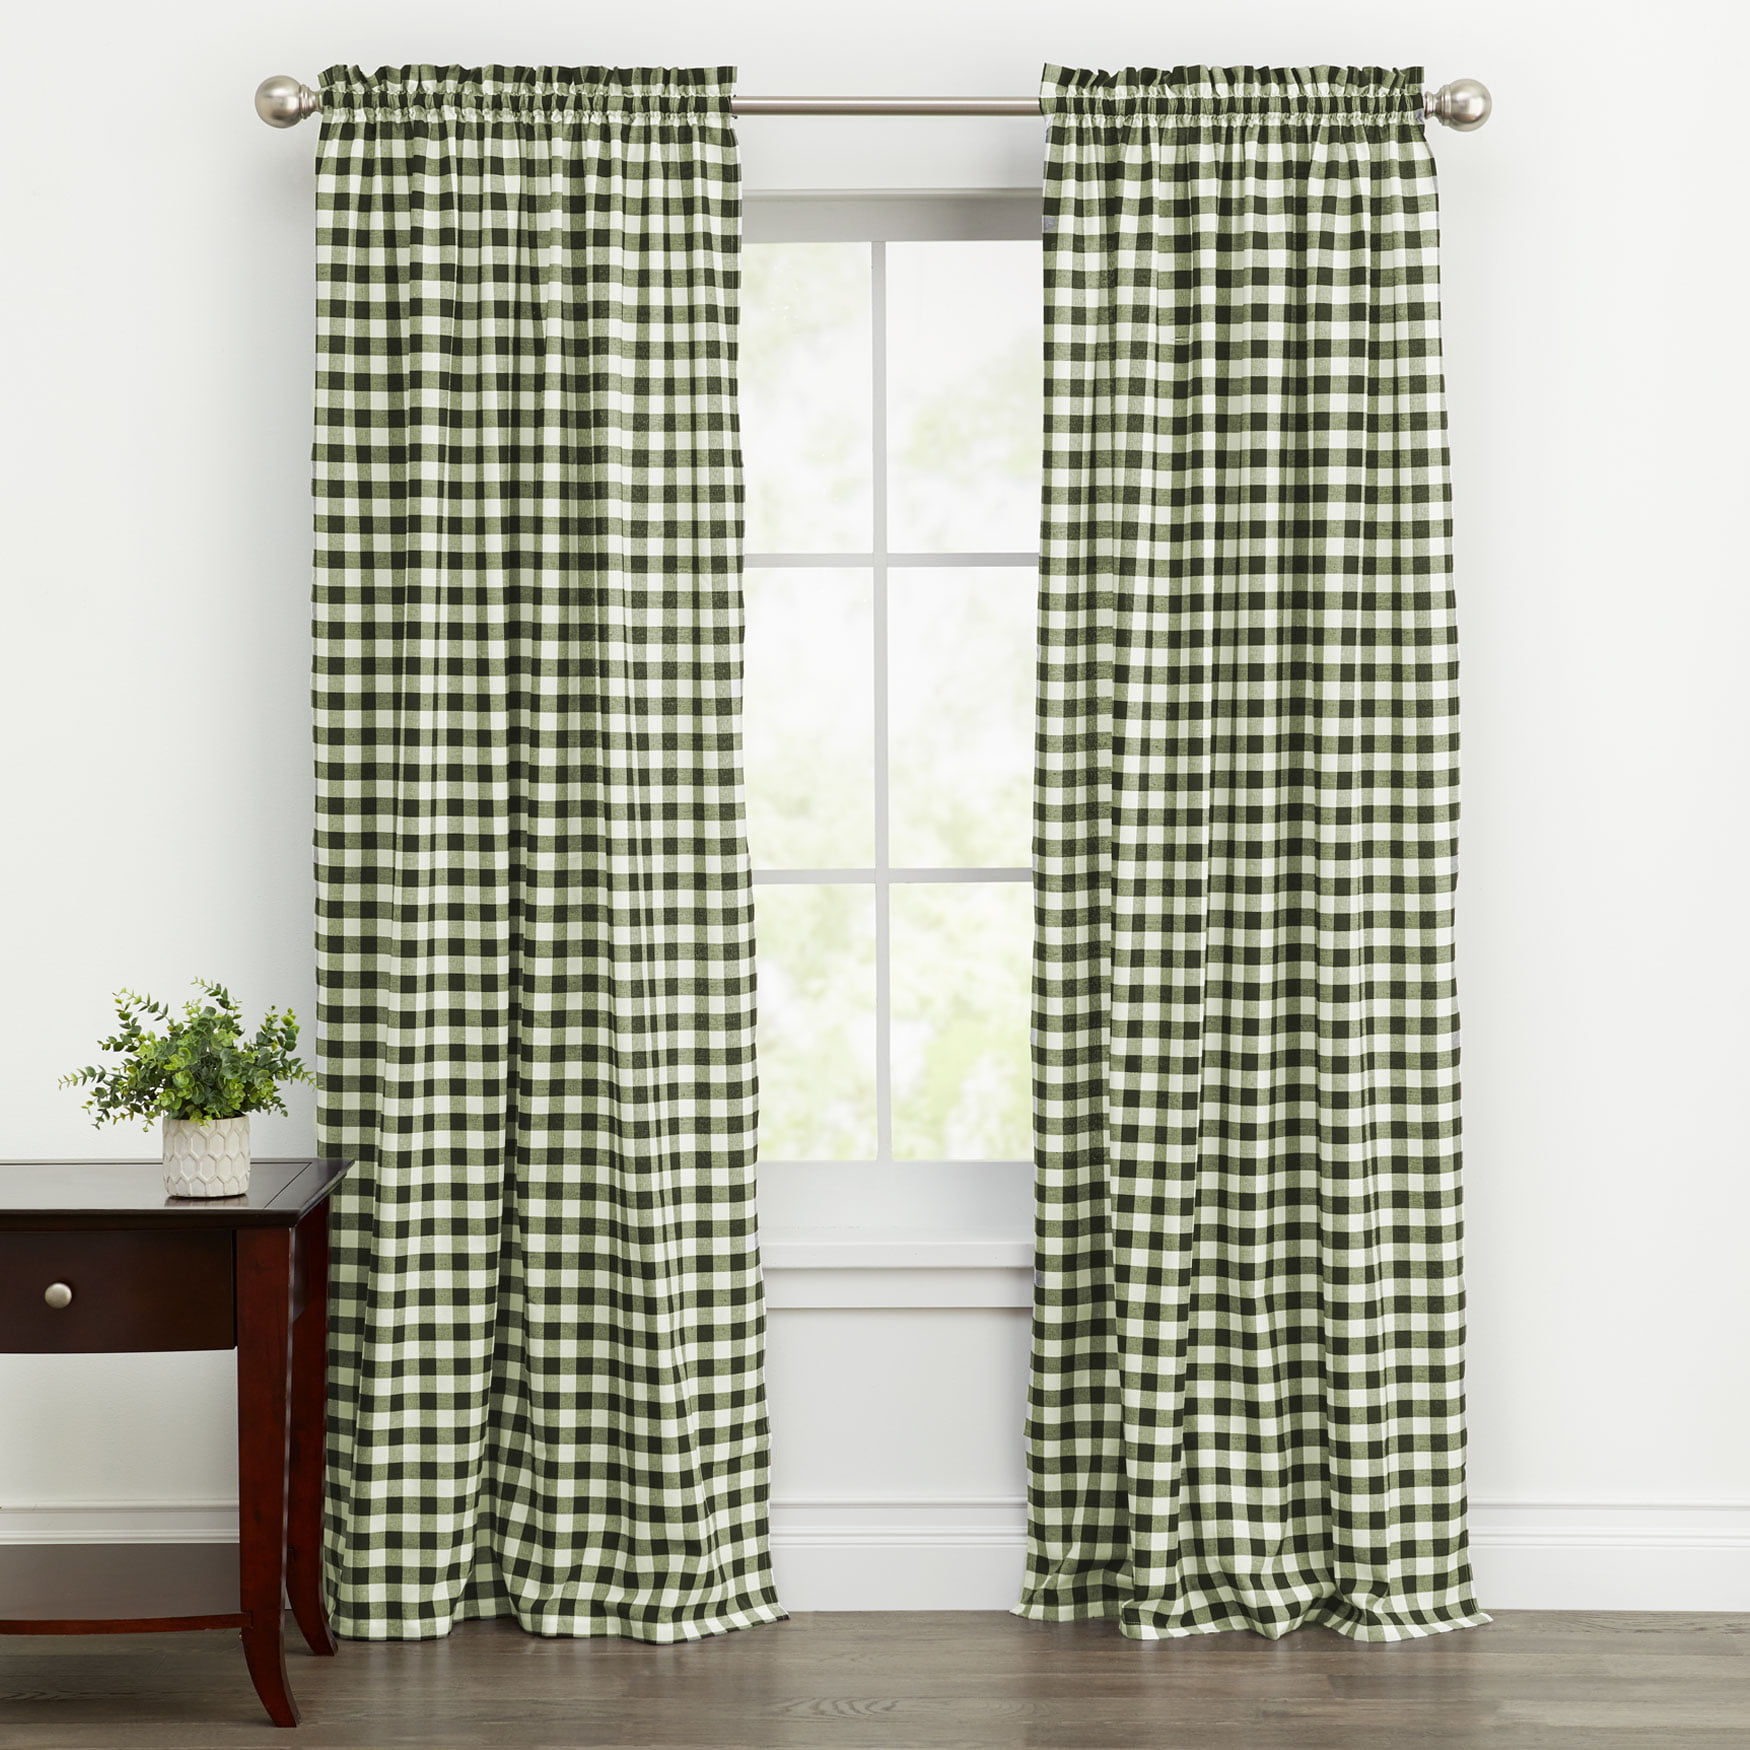 Woven Trends Farmhouse Curtains Kitchen Decor Buffalo Plaid Curtains Classic Country Plaid Gingham Checkered Design Farmhouse Decor Single Window Panel Walmart Com Walmart Com